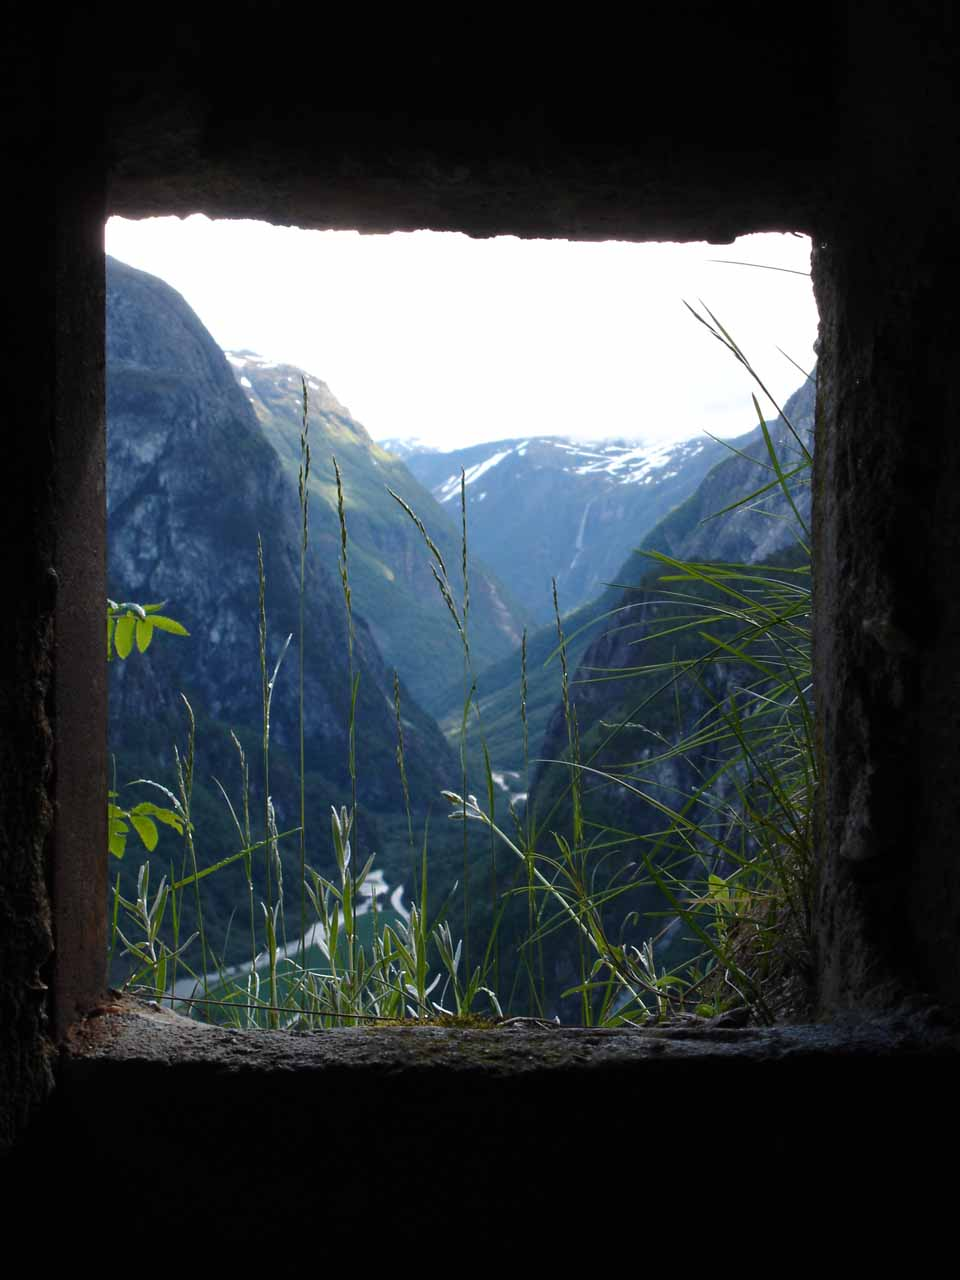 This was the view of through one of the World War II bunkers that was set up here.  This particular bunker was called 'Lorelei'